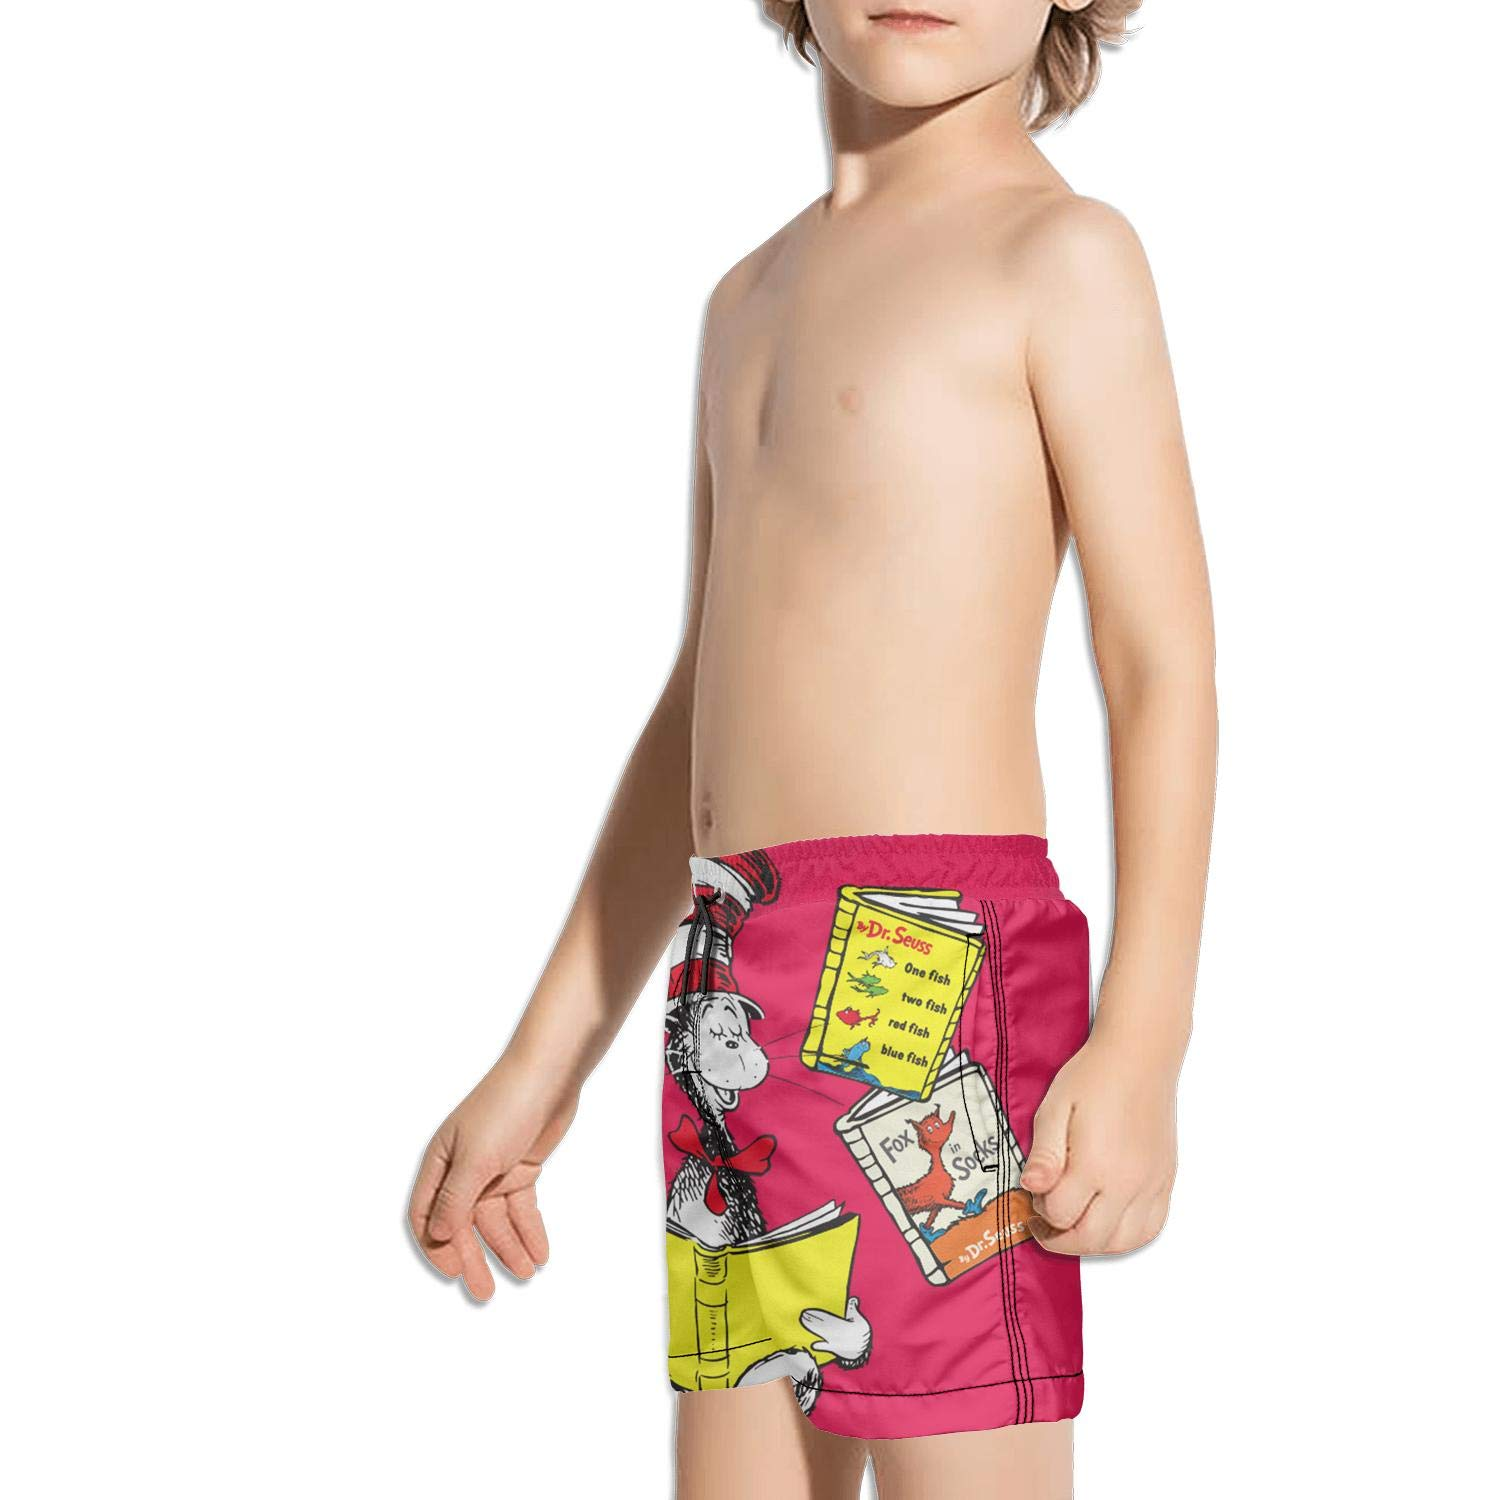 The cat in The hat Fox in Socks-Green Eggs and ham dr Seuss Extended Solid Beach Swimming Trunks Shorts